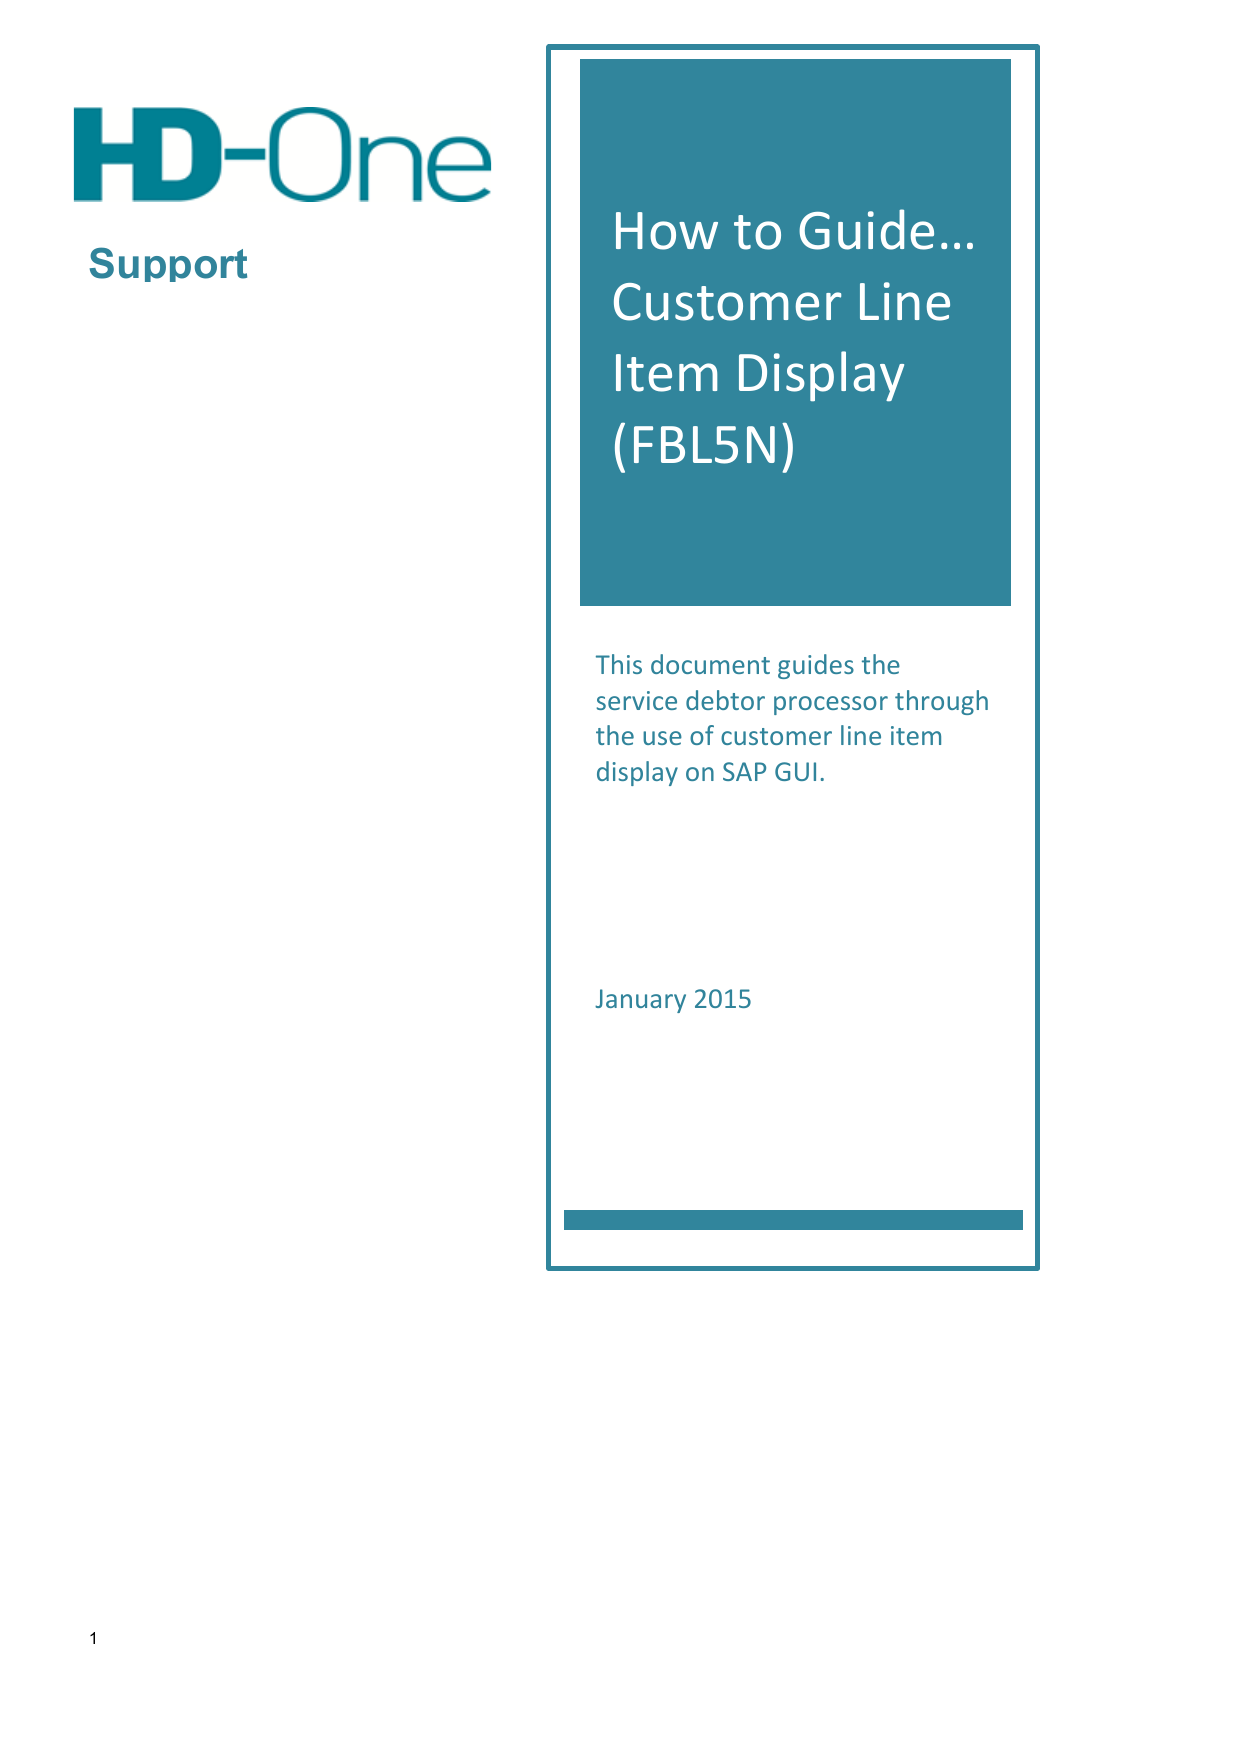 How to Guide… Customer Line Item Display (FBL5N